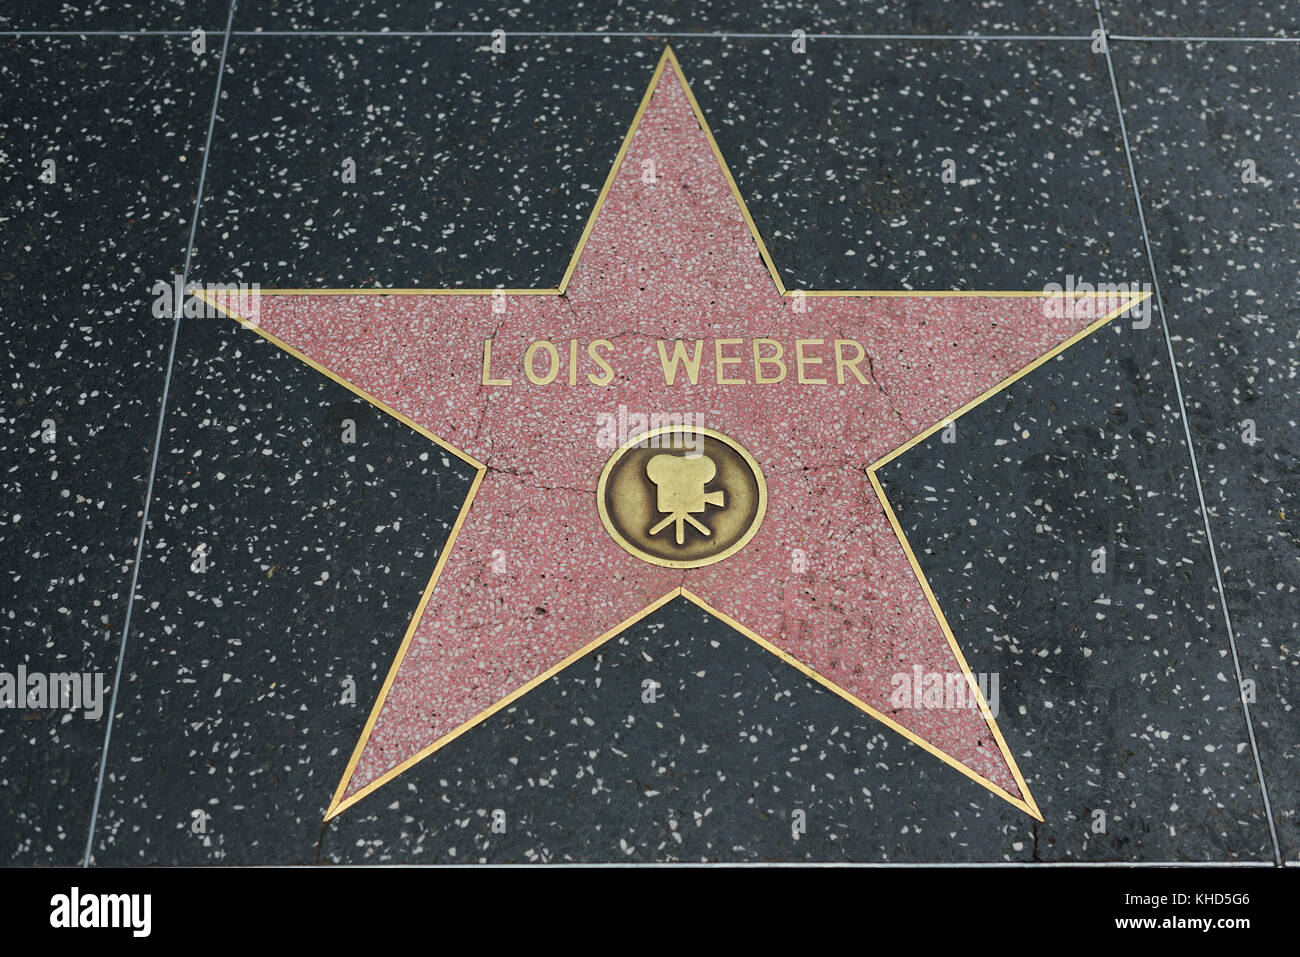 HOLLYWOOD, CA - DECEMBER 06: Lois Weber star on the Hollywood Walk of Fame in Hollywood, California on Dec. 6, 2016. - Stock Image